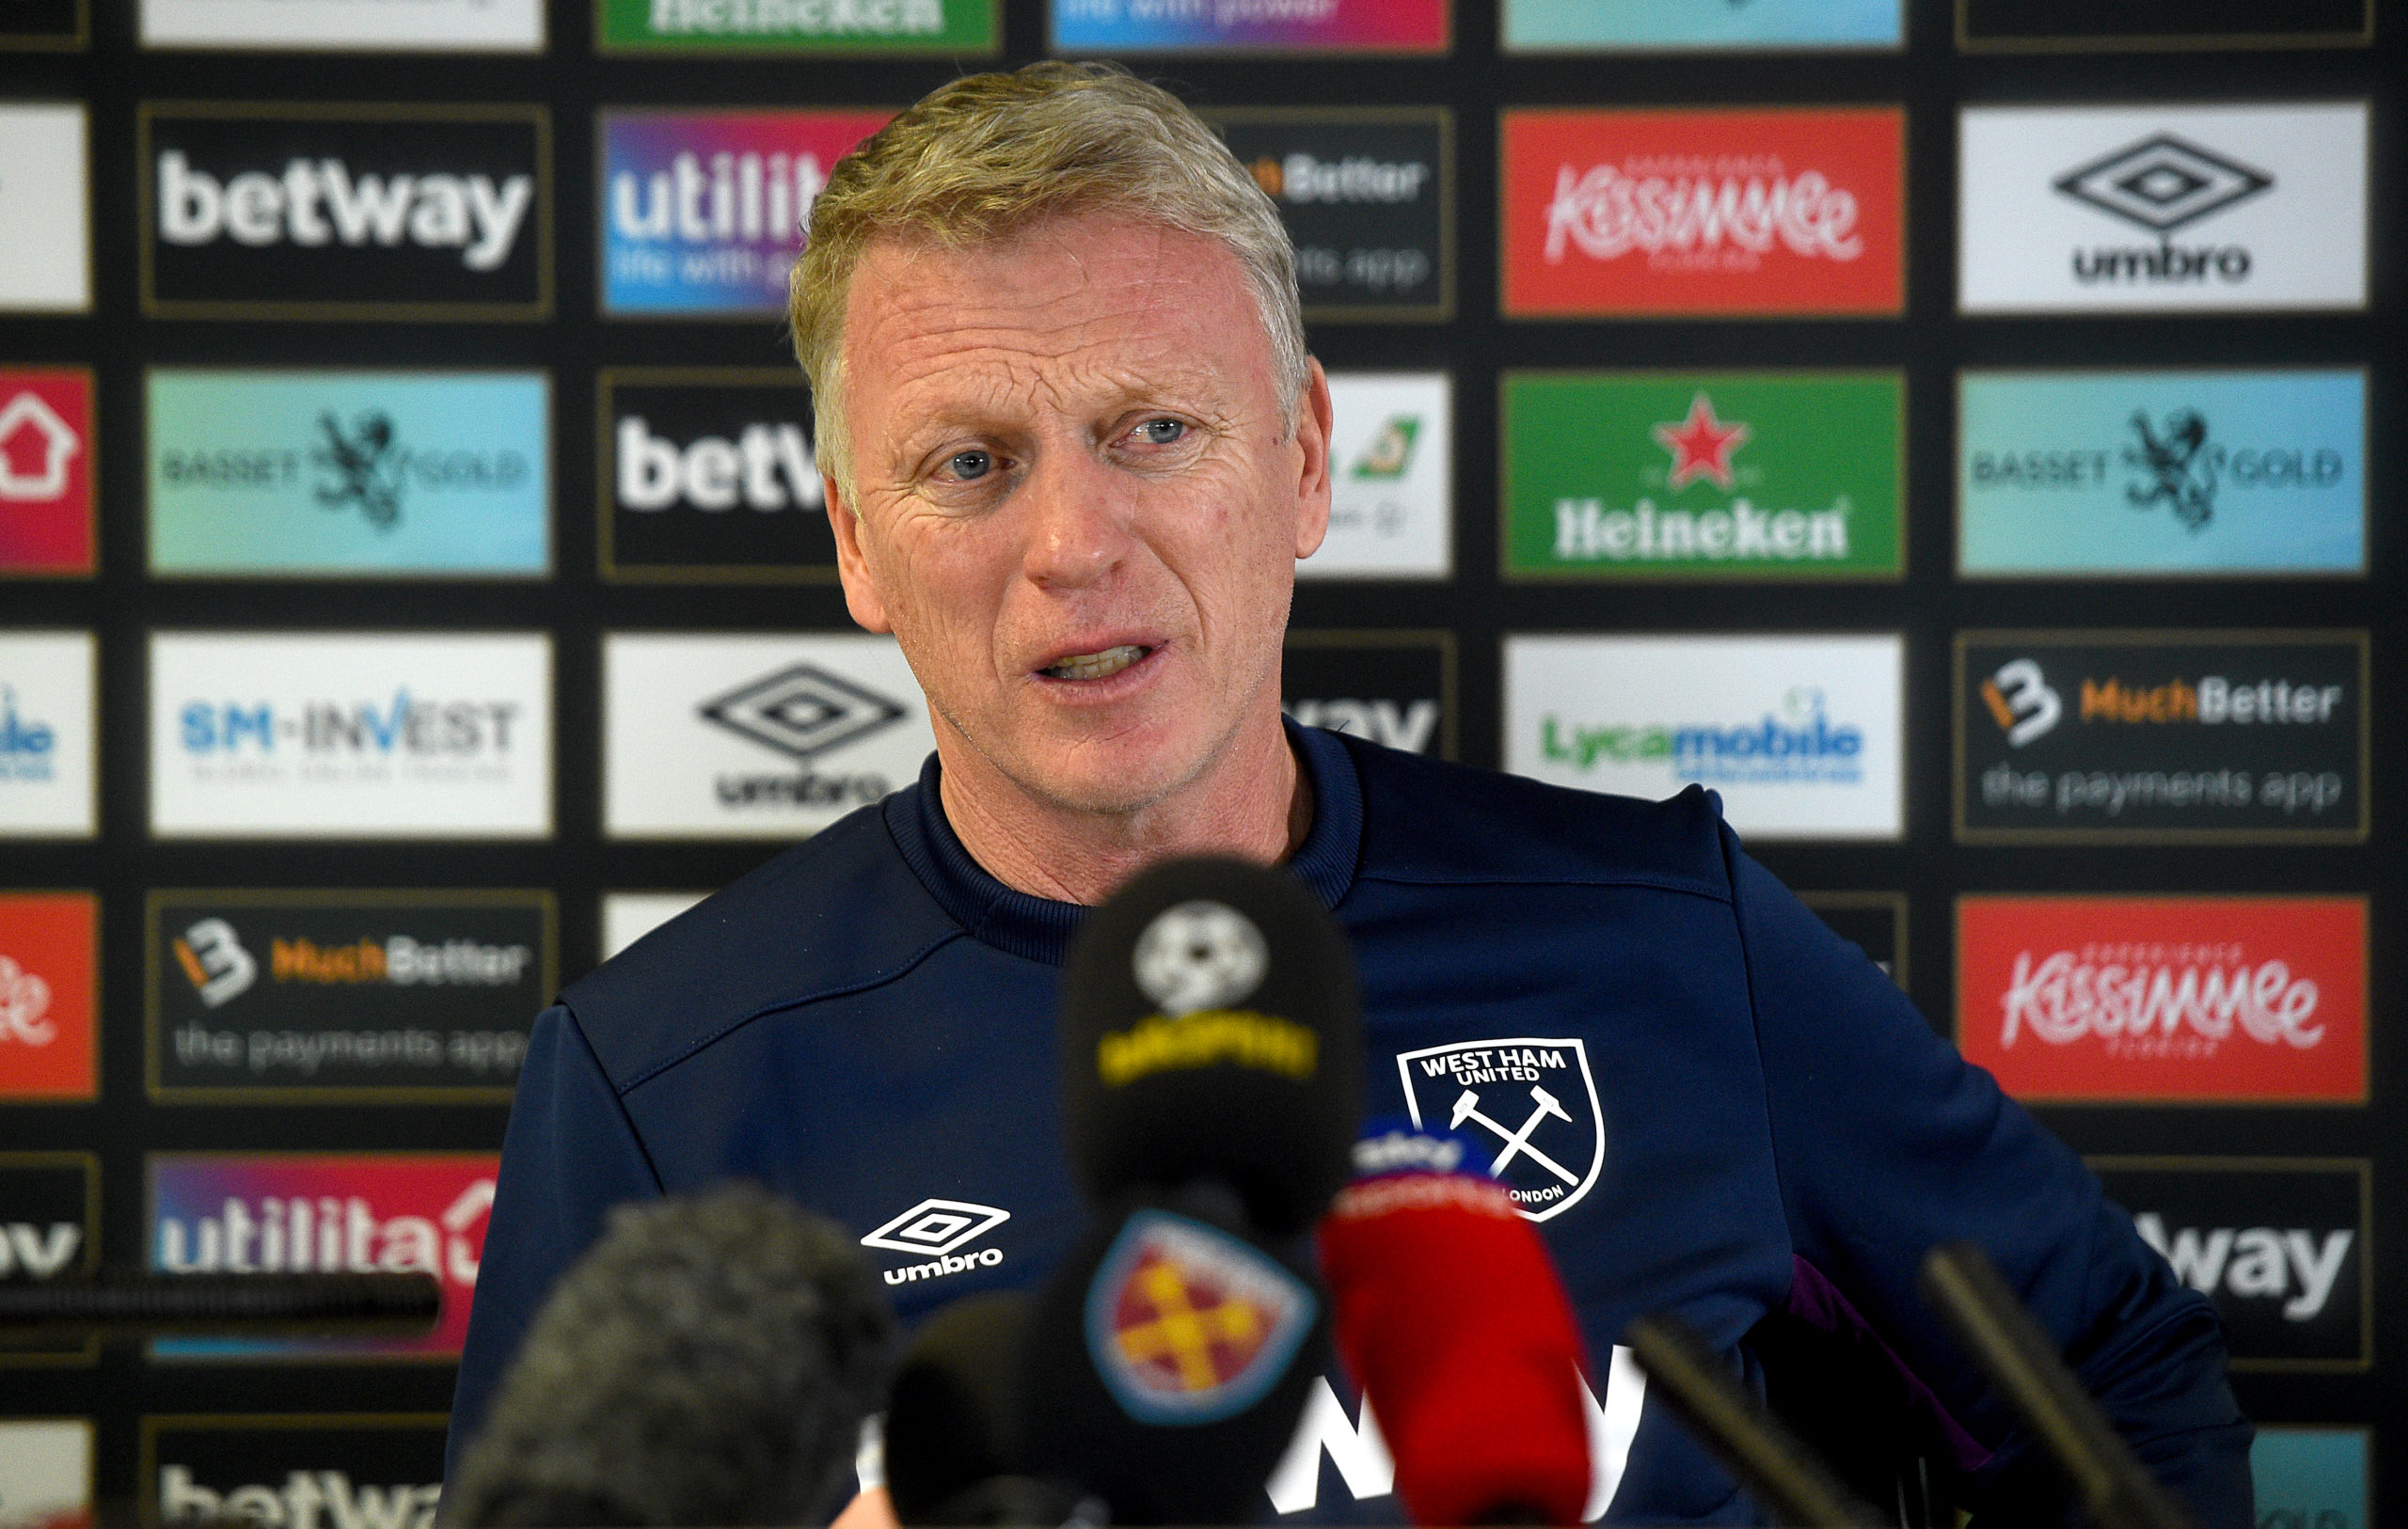 David Moyes has gone through the full gamut of emotions since returning to West Ham as manager back in December